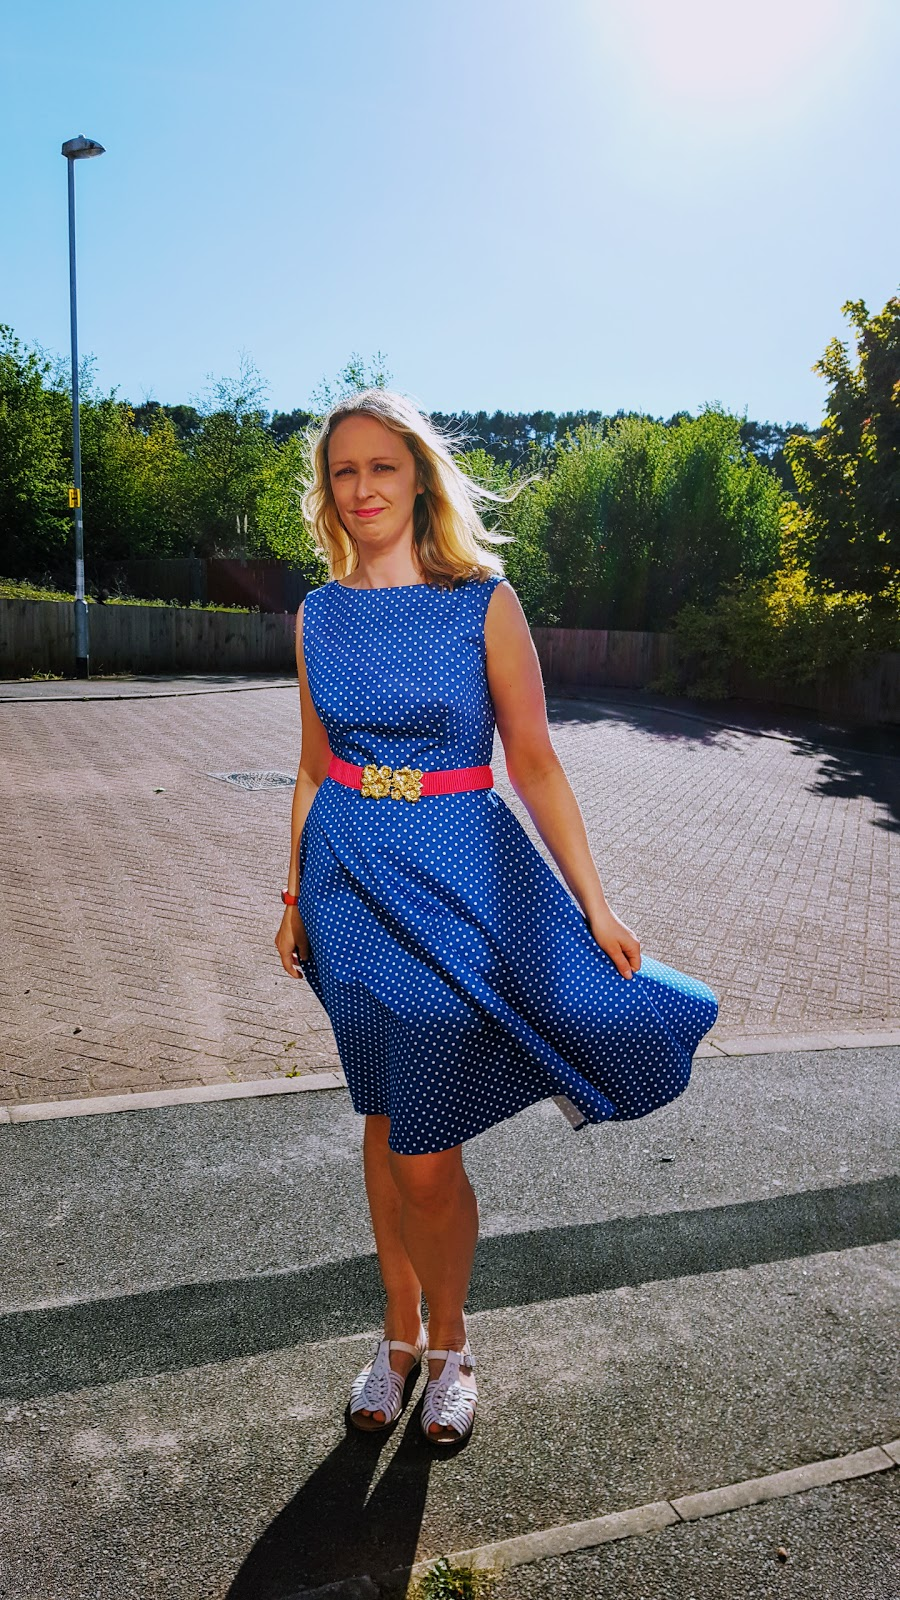 Going Out Out: Over 40 Style  Blue Polka Dot Dress